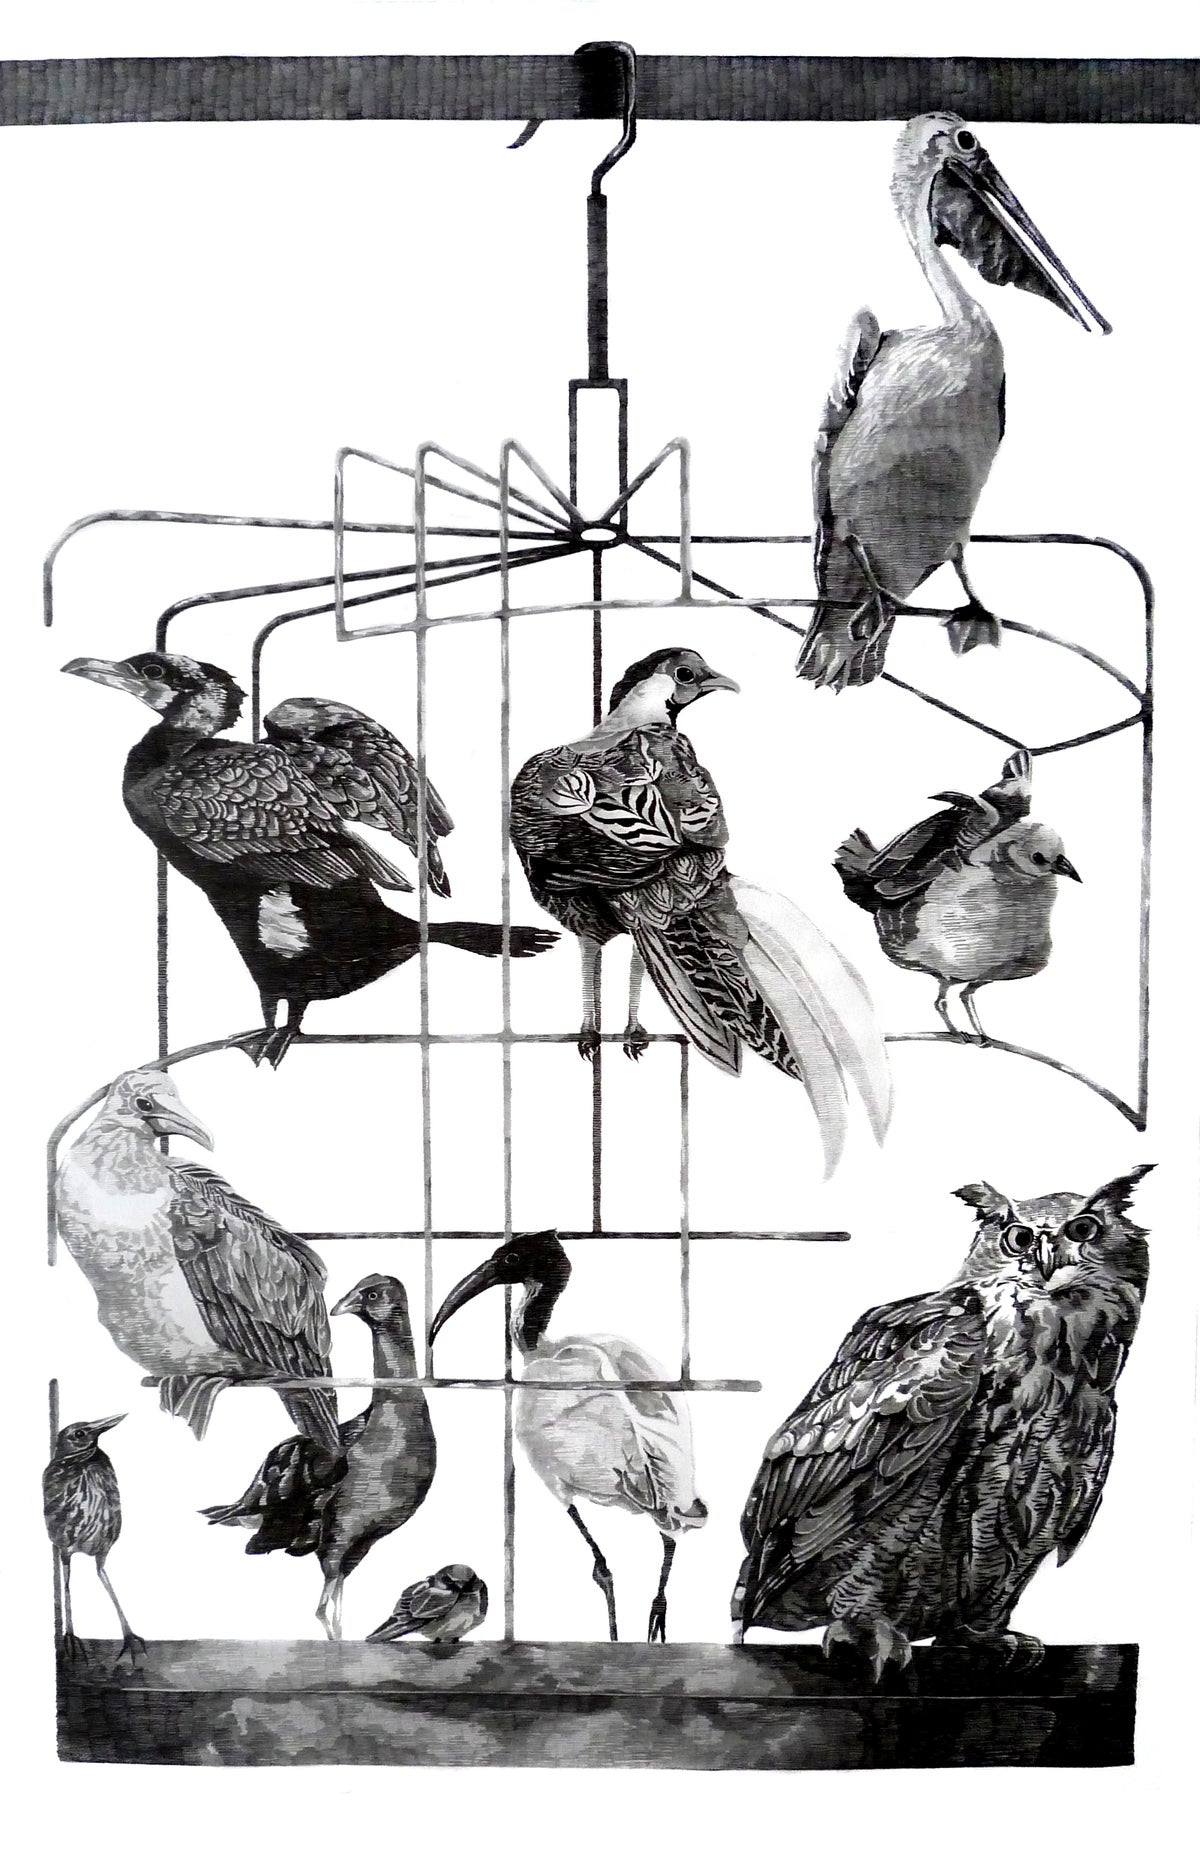 Image of A Collection of Birds from Hong Kong . I